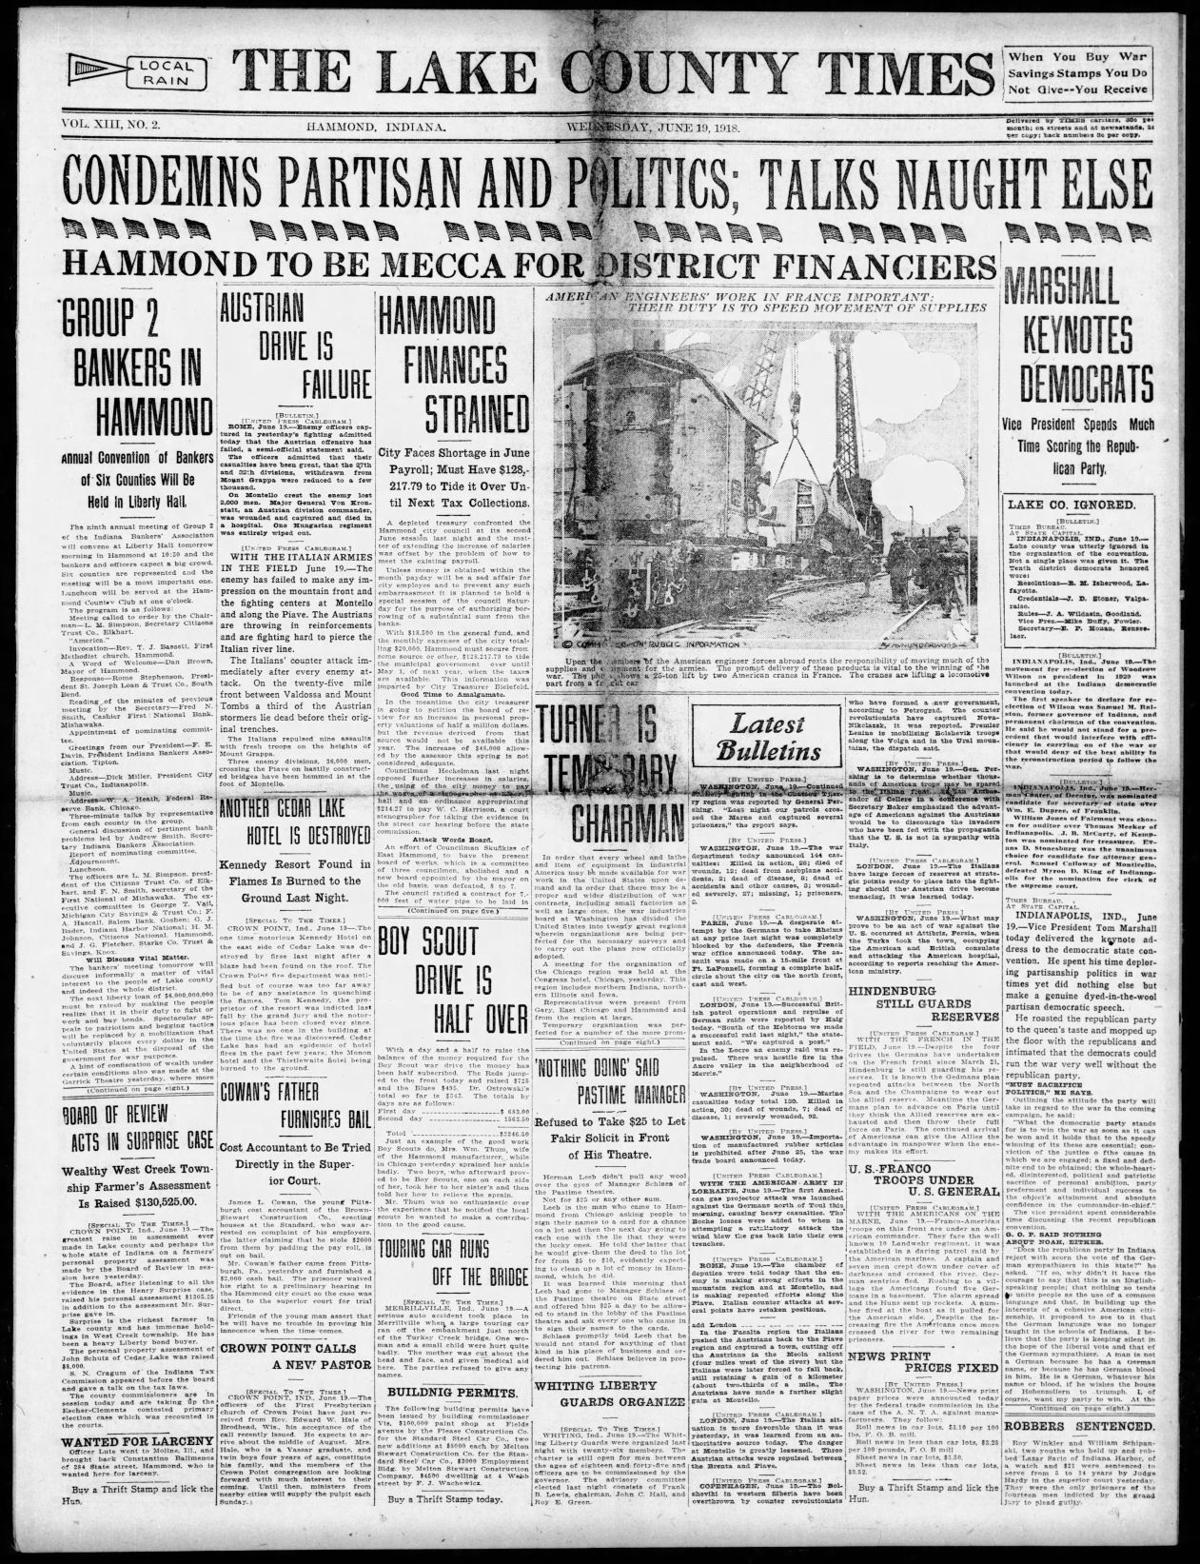 June 19, 1918: Another Cedar Lake Hotel Is Destroyed